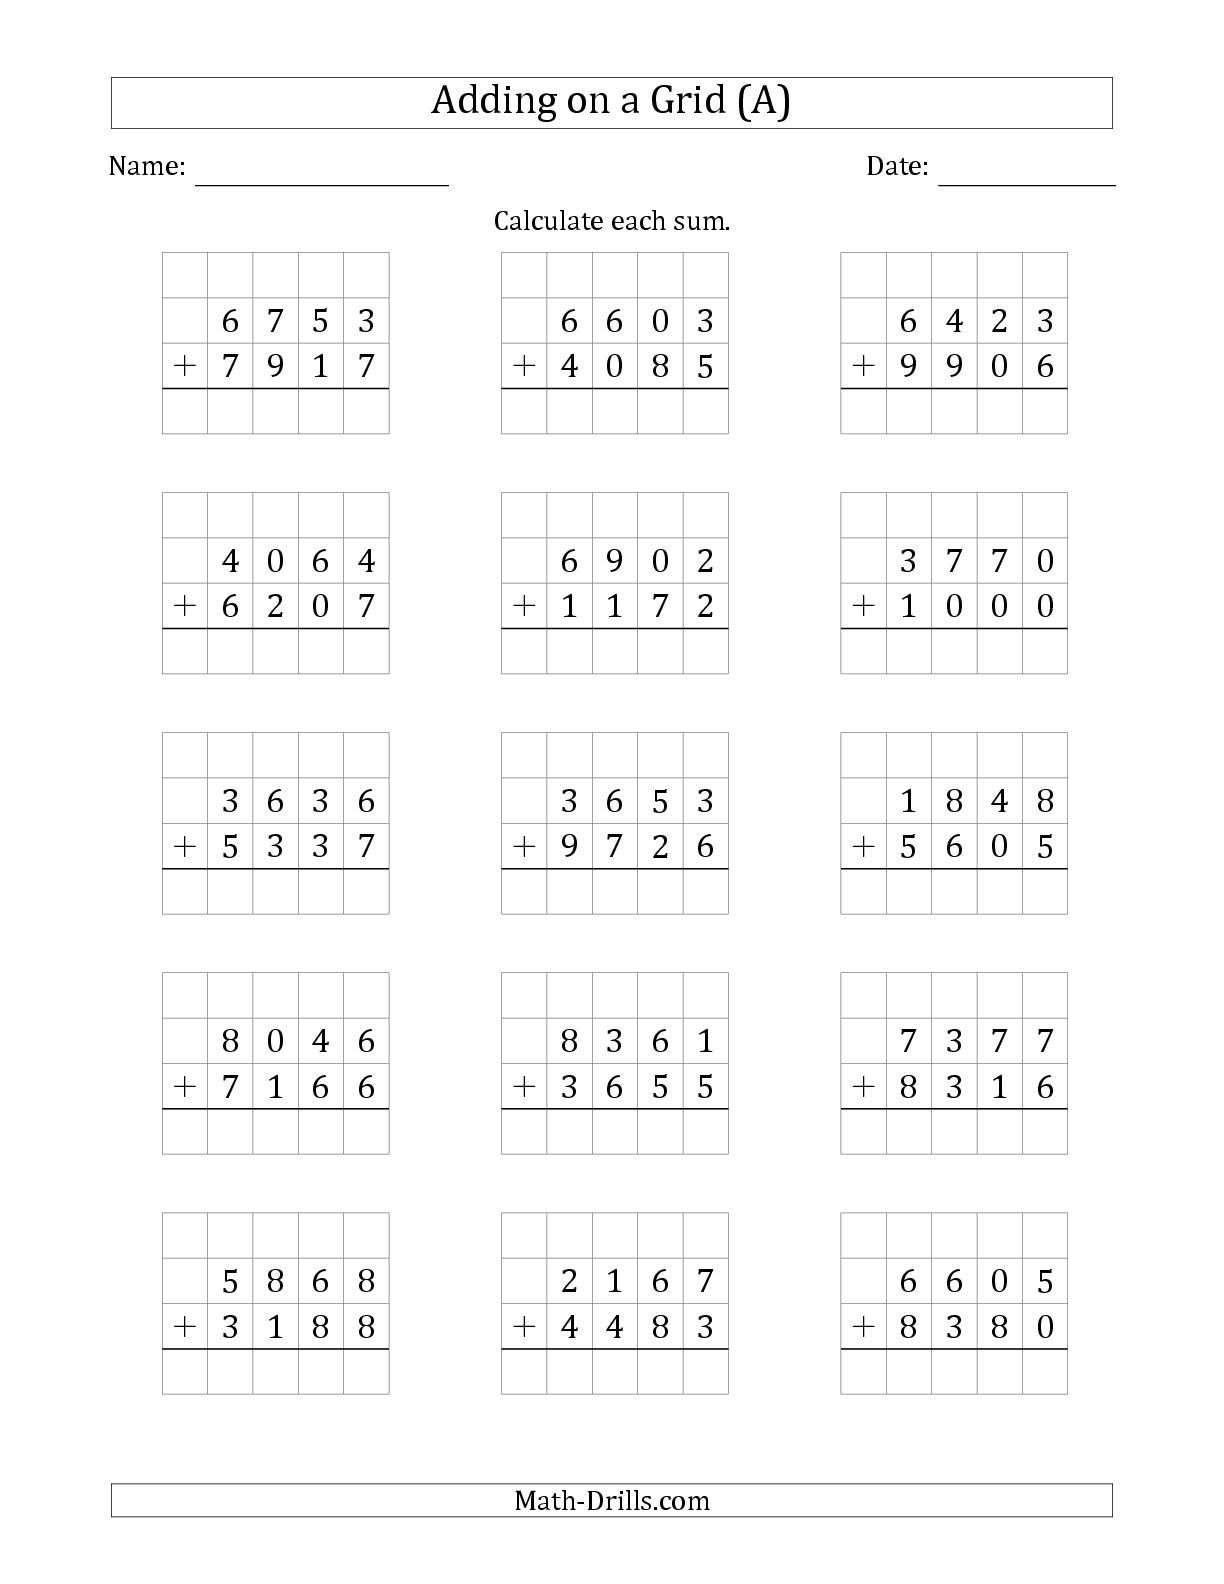 The Adding 4 Digit Plus 4 Digit Numbers On A Grid A Math